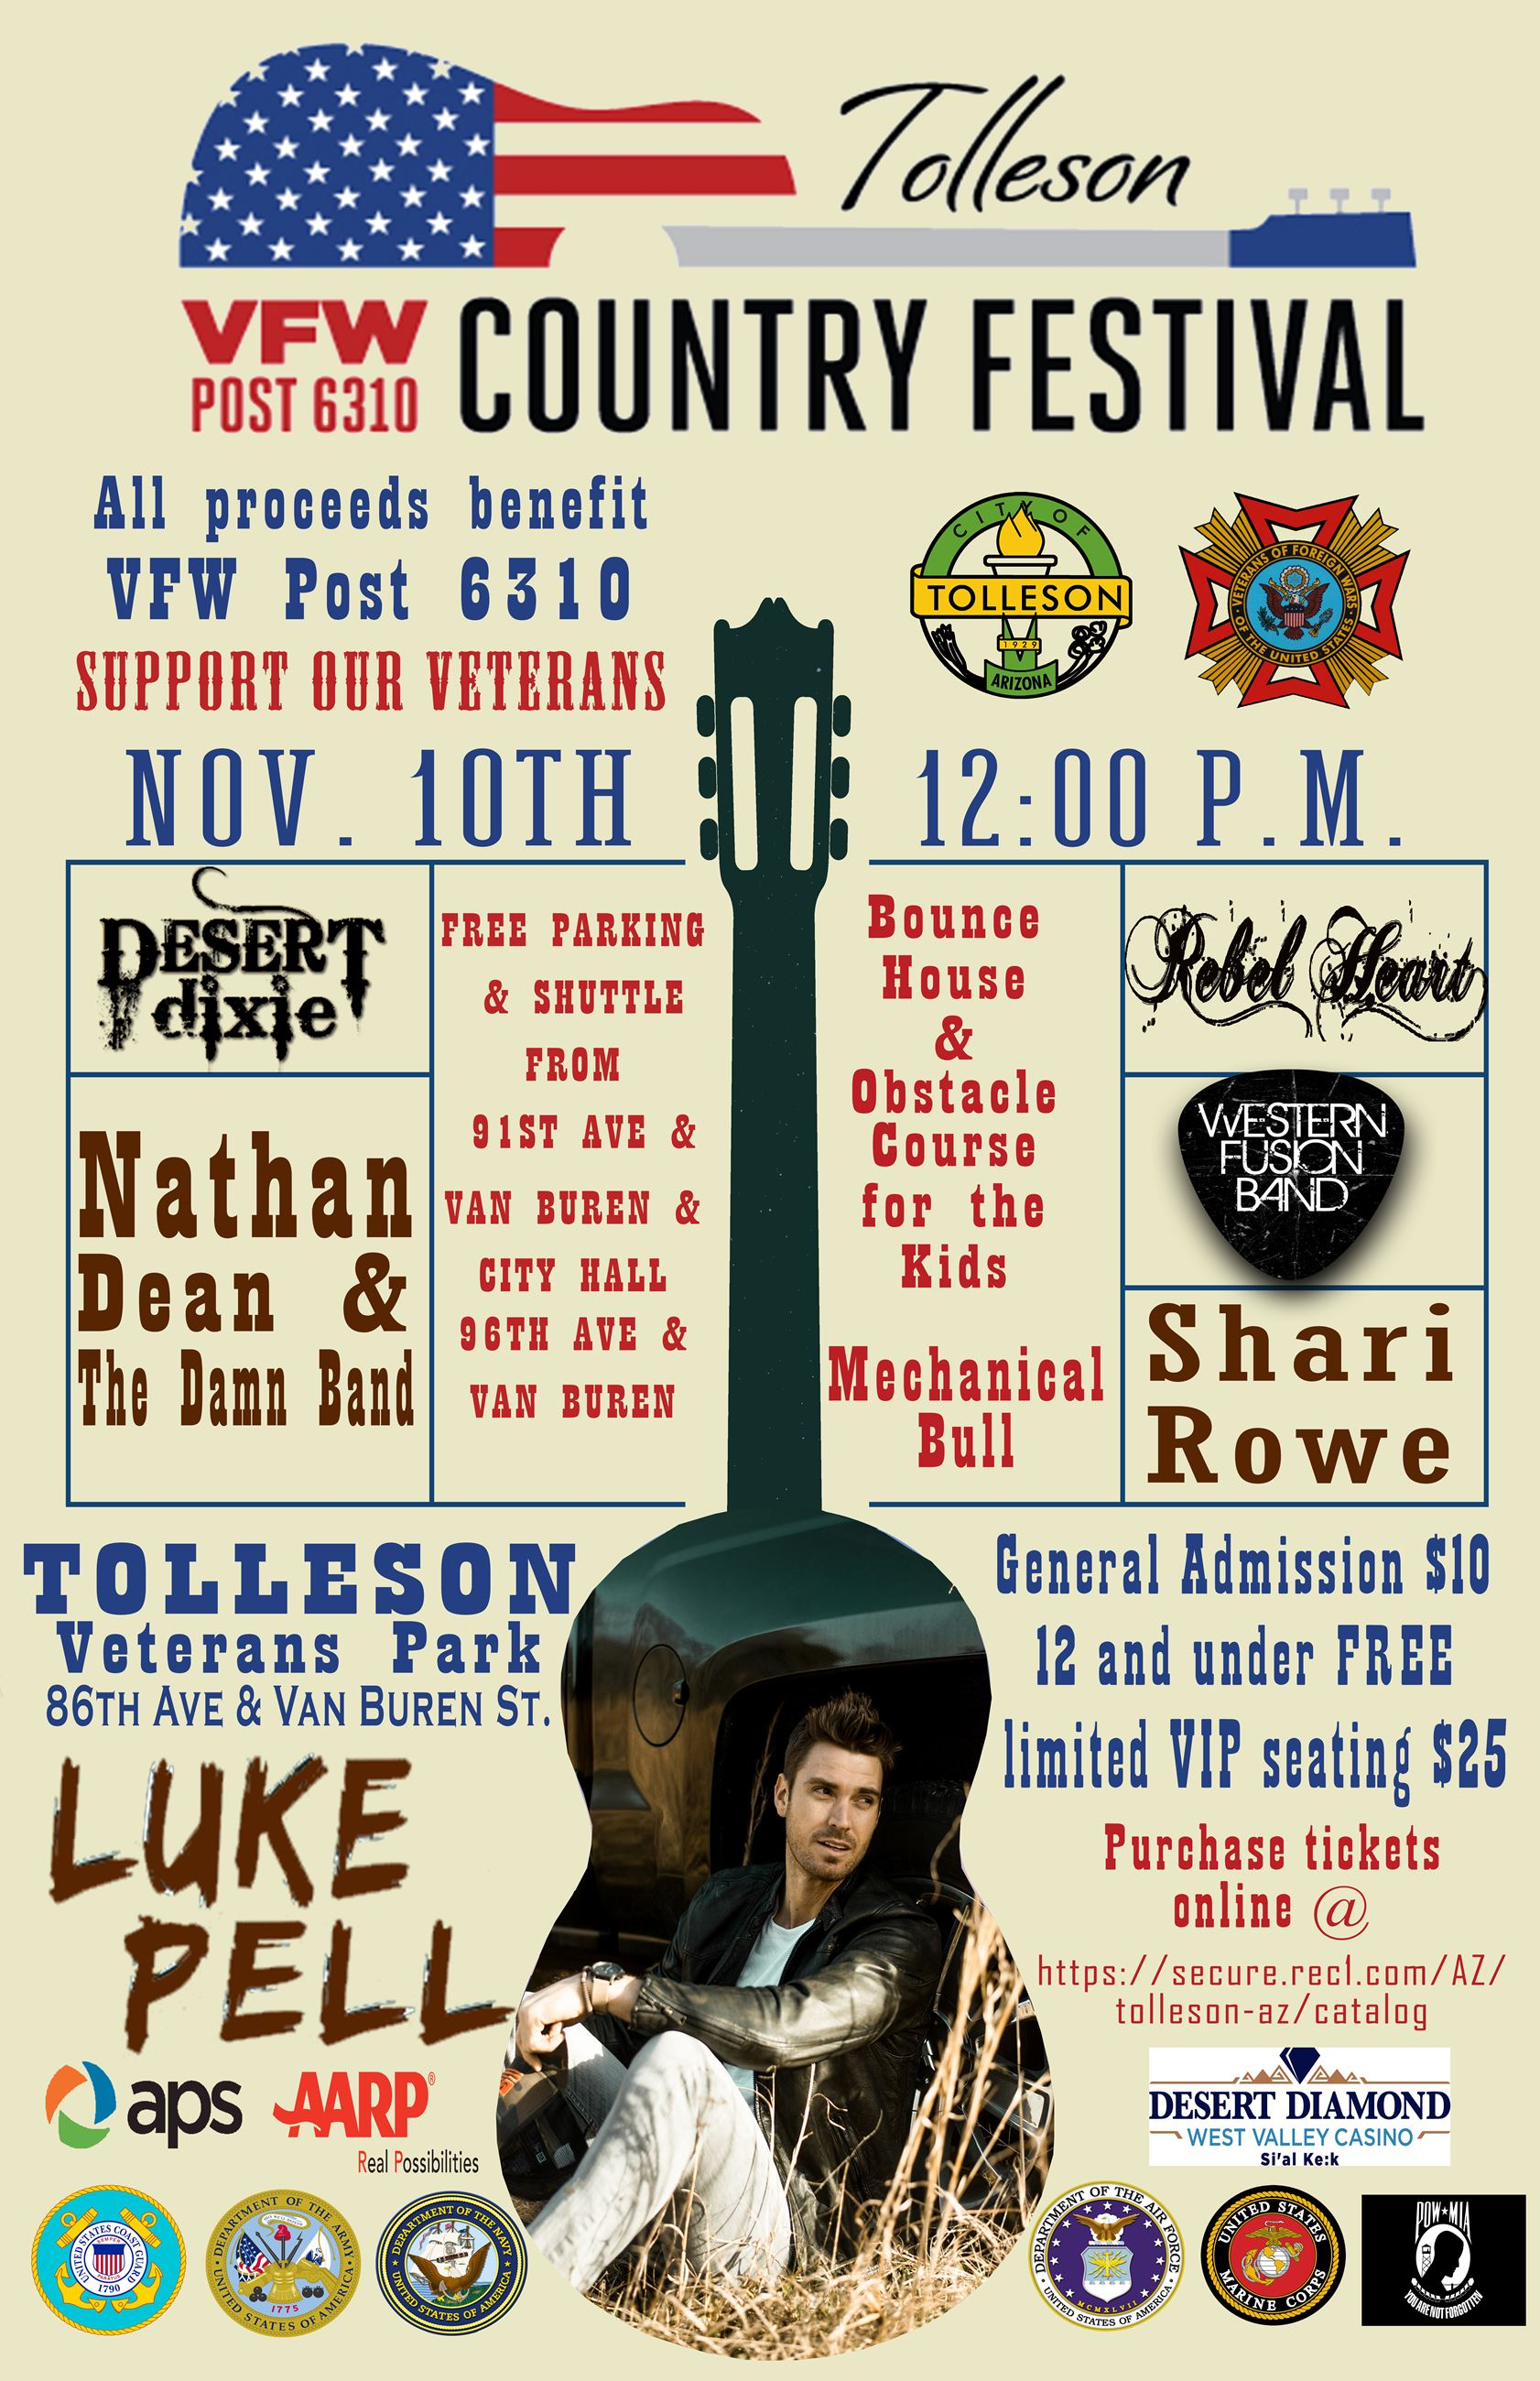 Tolleson VFW Country Festival Flyer MAIN 2018